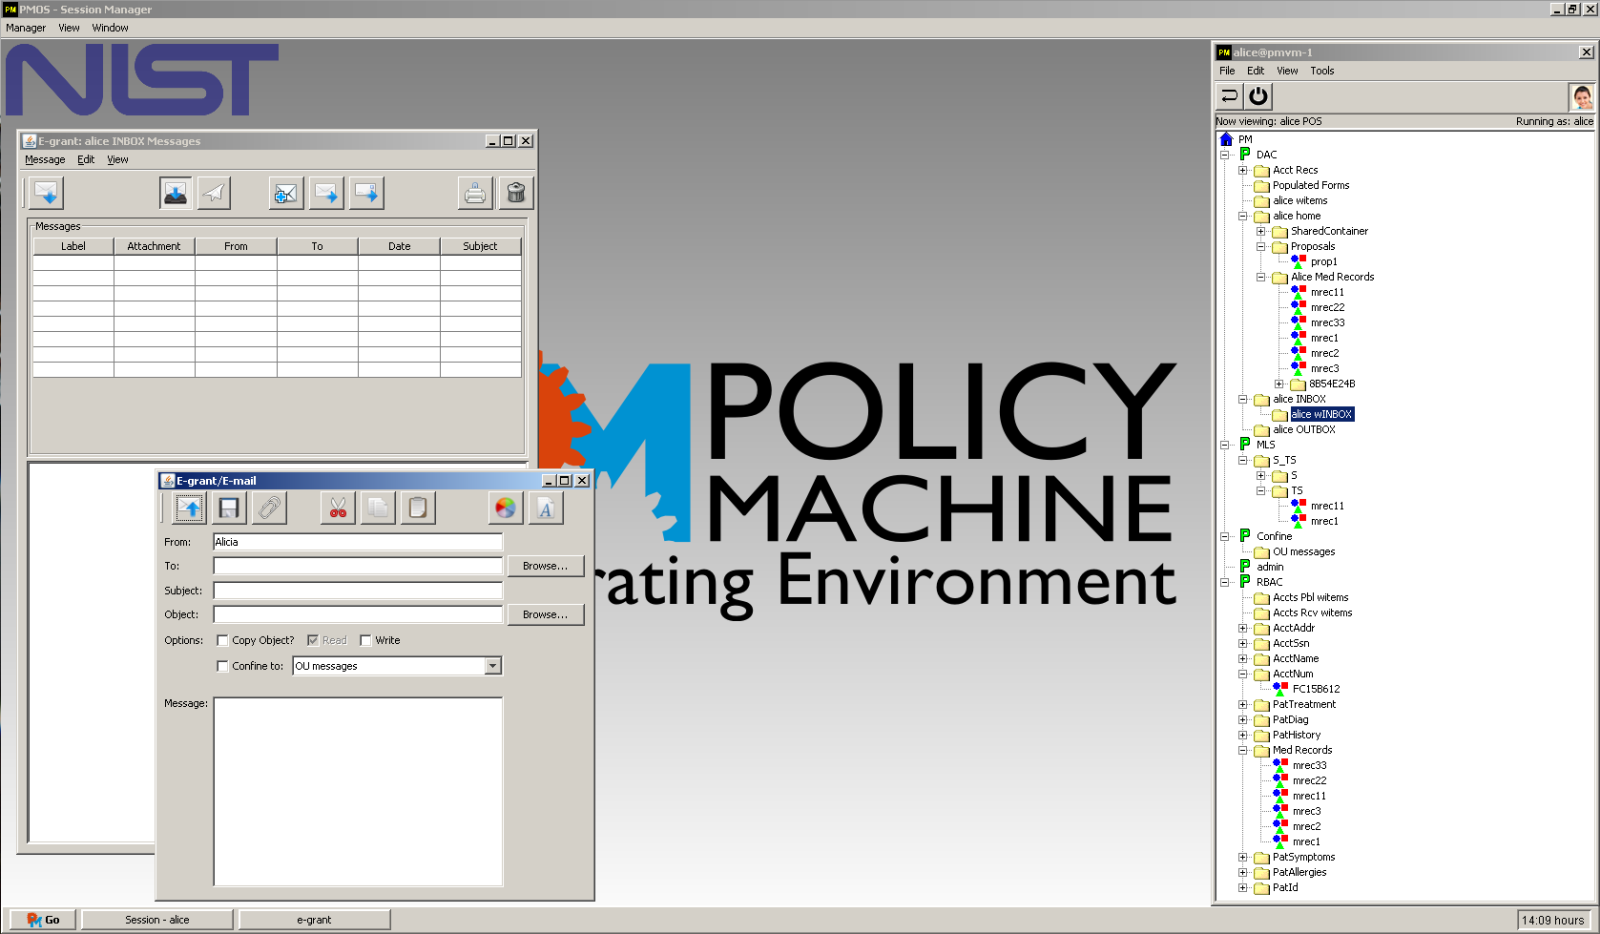 Policy Machine Operating Environment